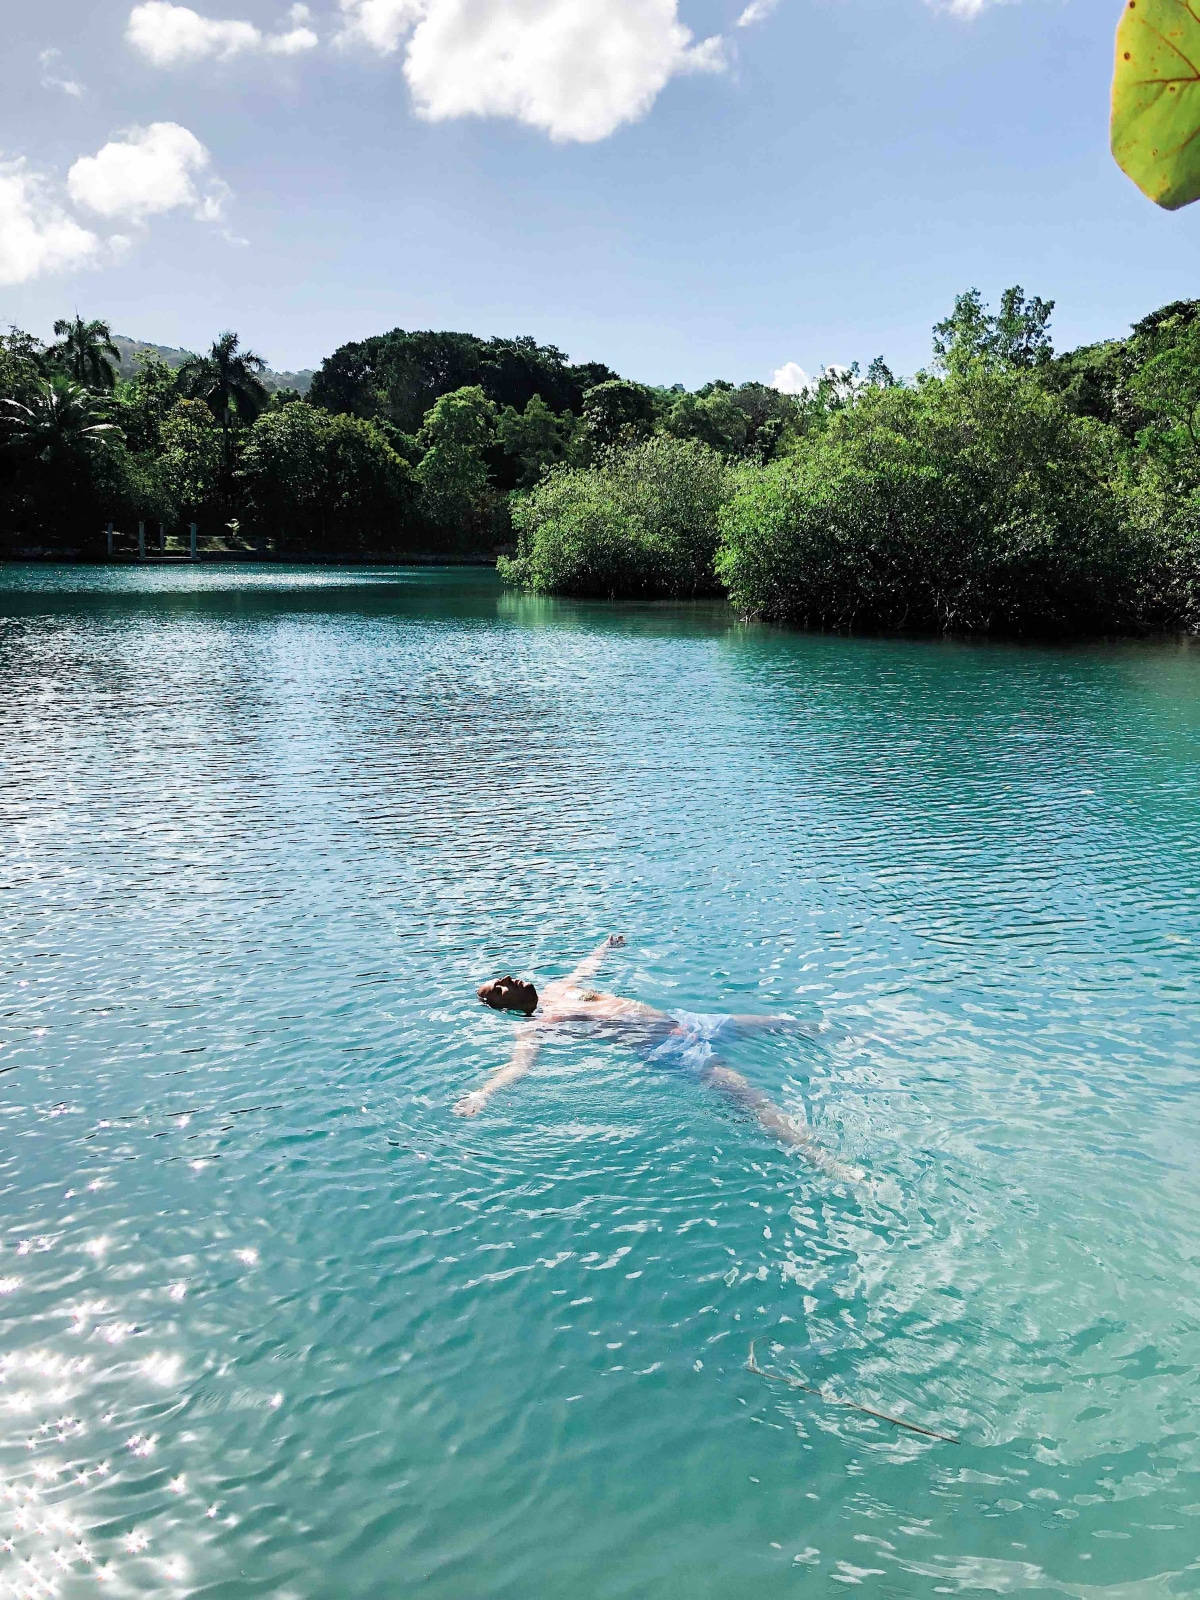 our lagoon cottage meant lingering days diving into the greenest waters